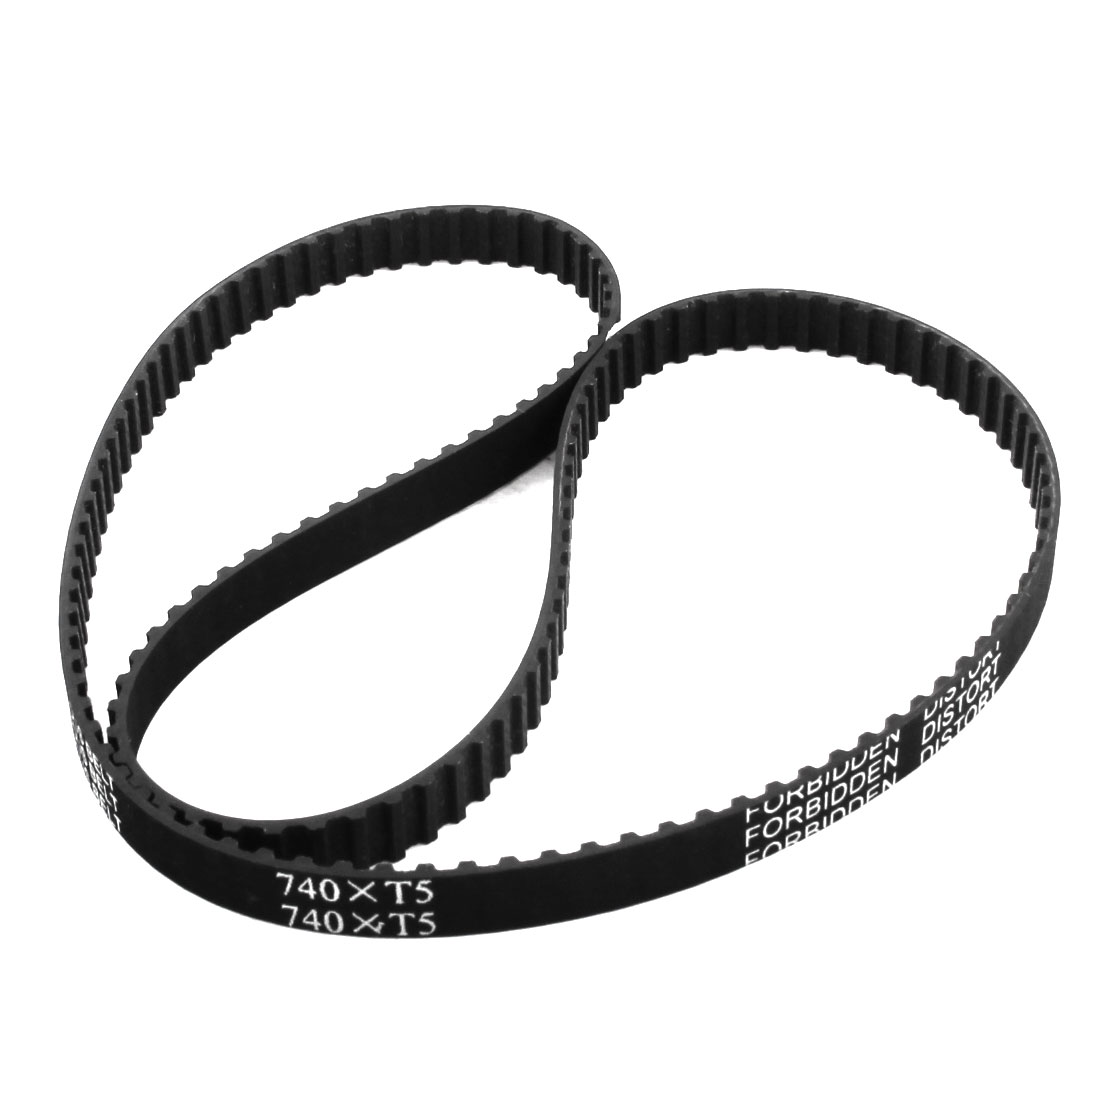 T5x740 148-Tooth 10mm Width Single Side Black Rubber Groove Industrial CNC Machine 3D Printer Synchronous Timing Belt 740mm Girth